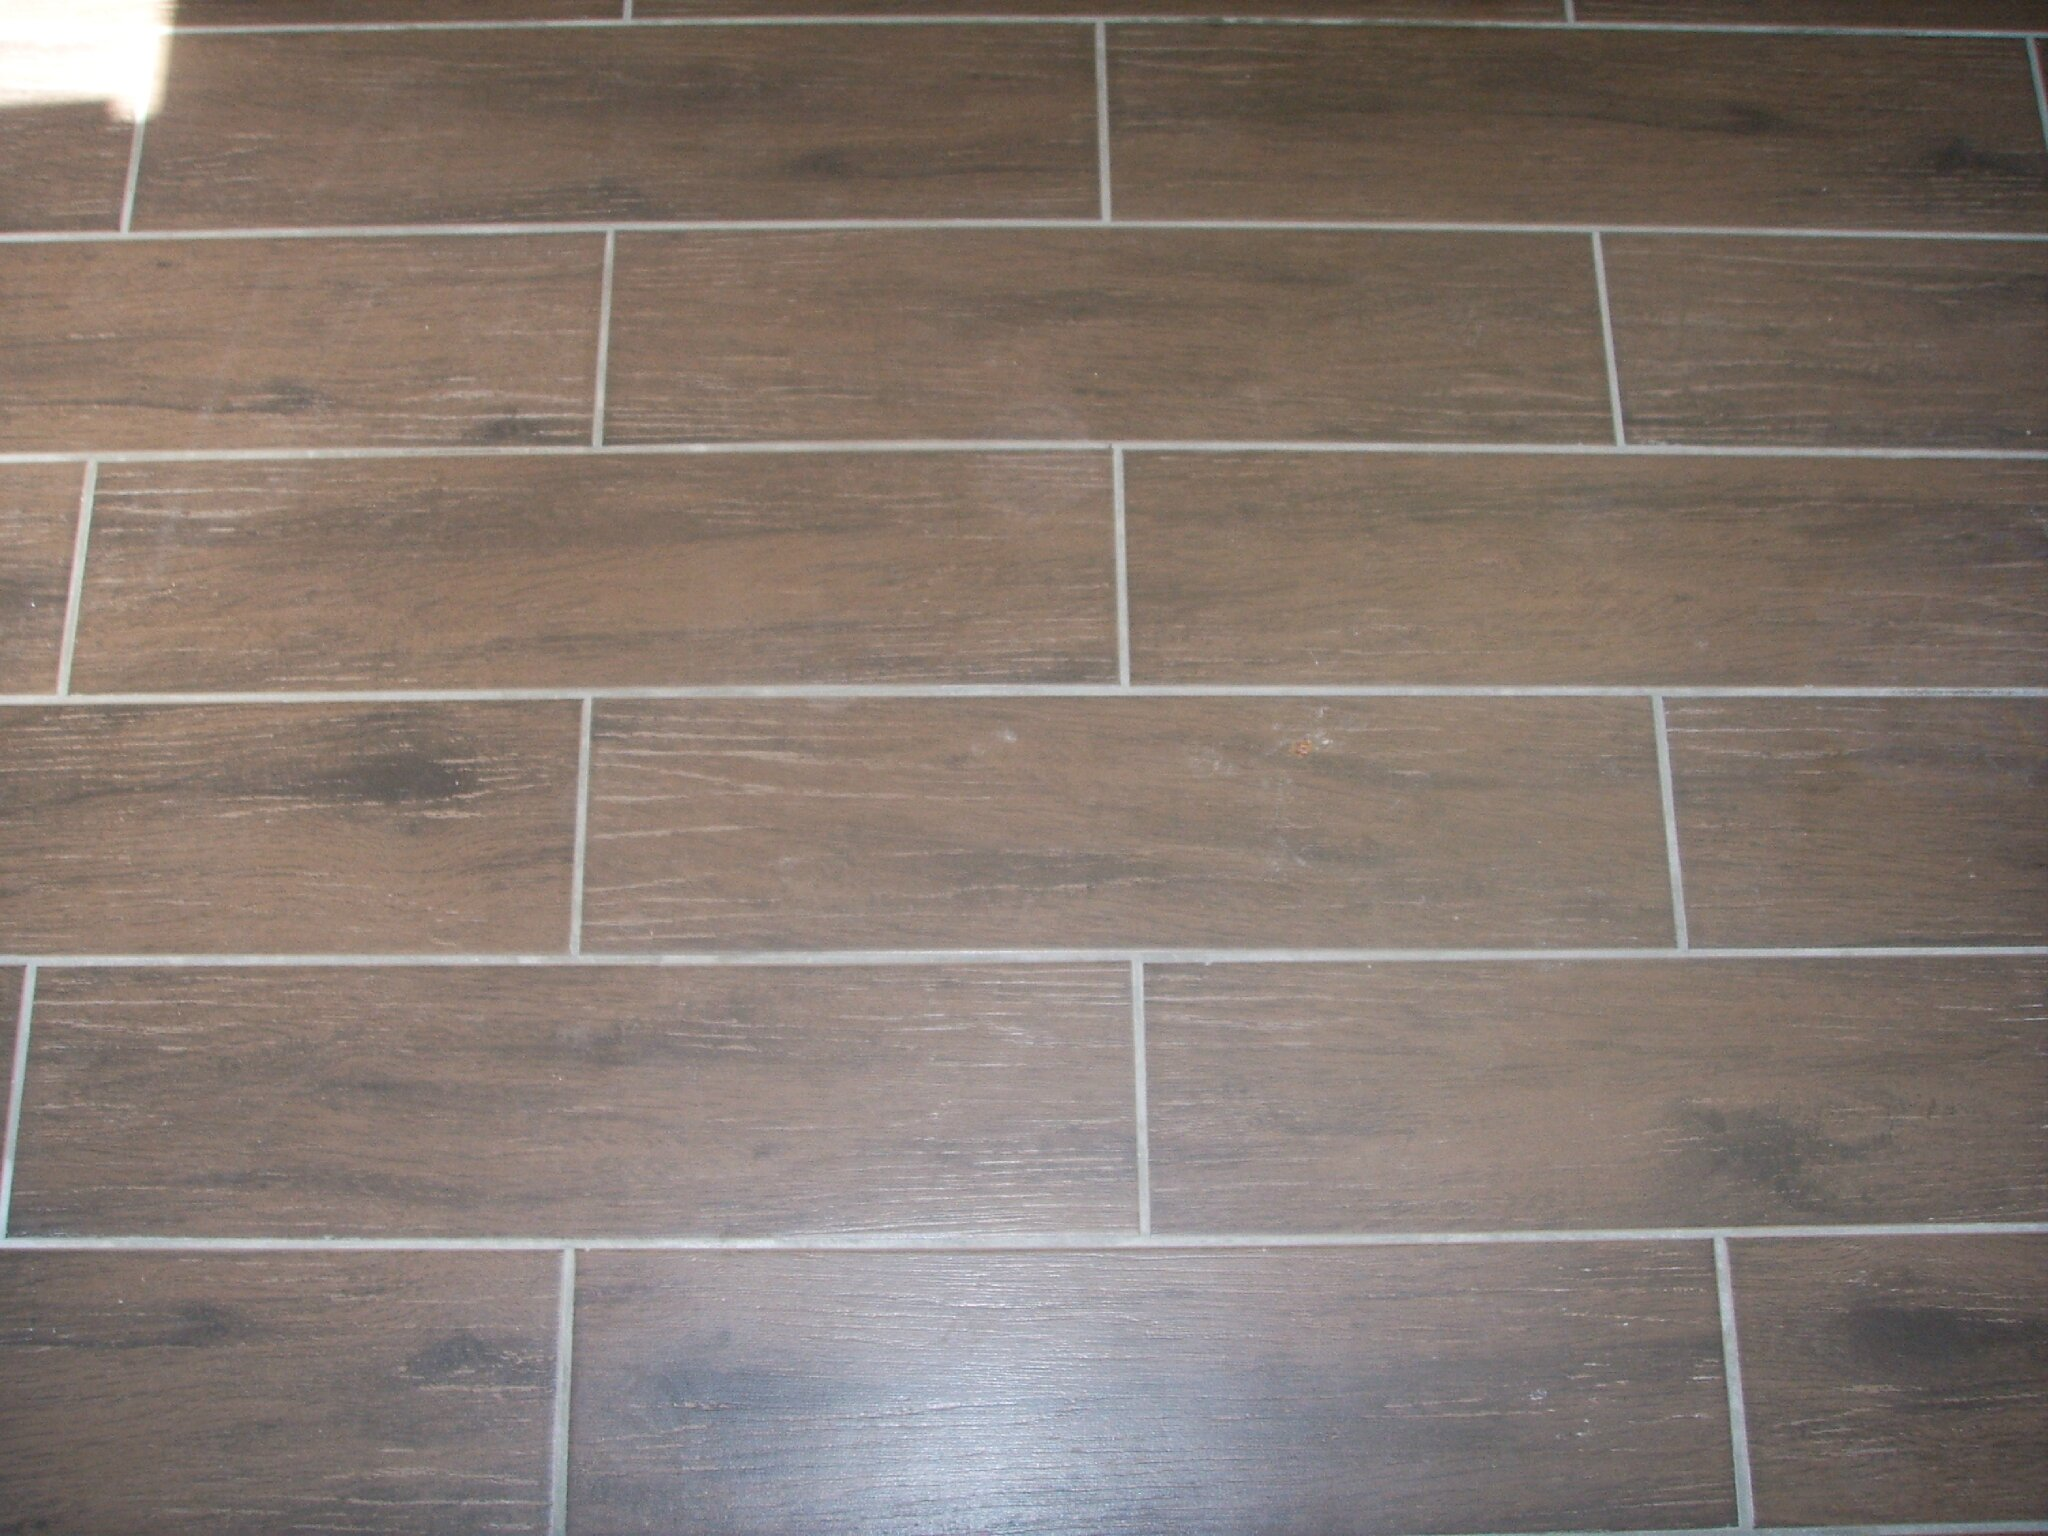 Carrelage finition for Carrelage imitation parquet salle de bain leroy merlin